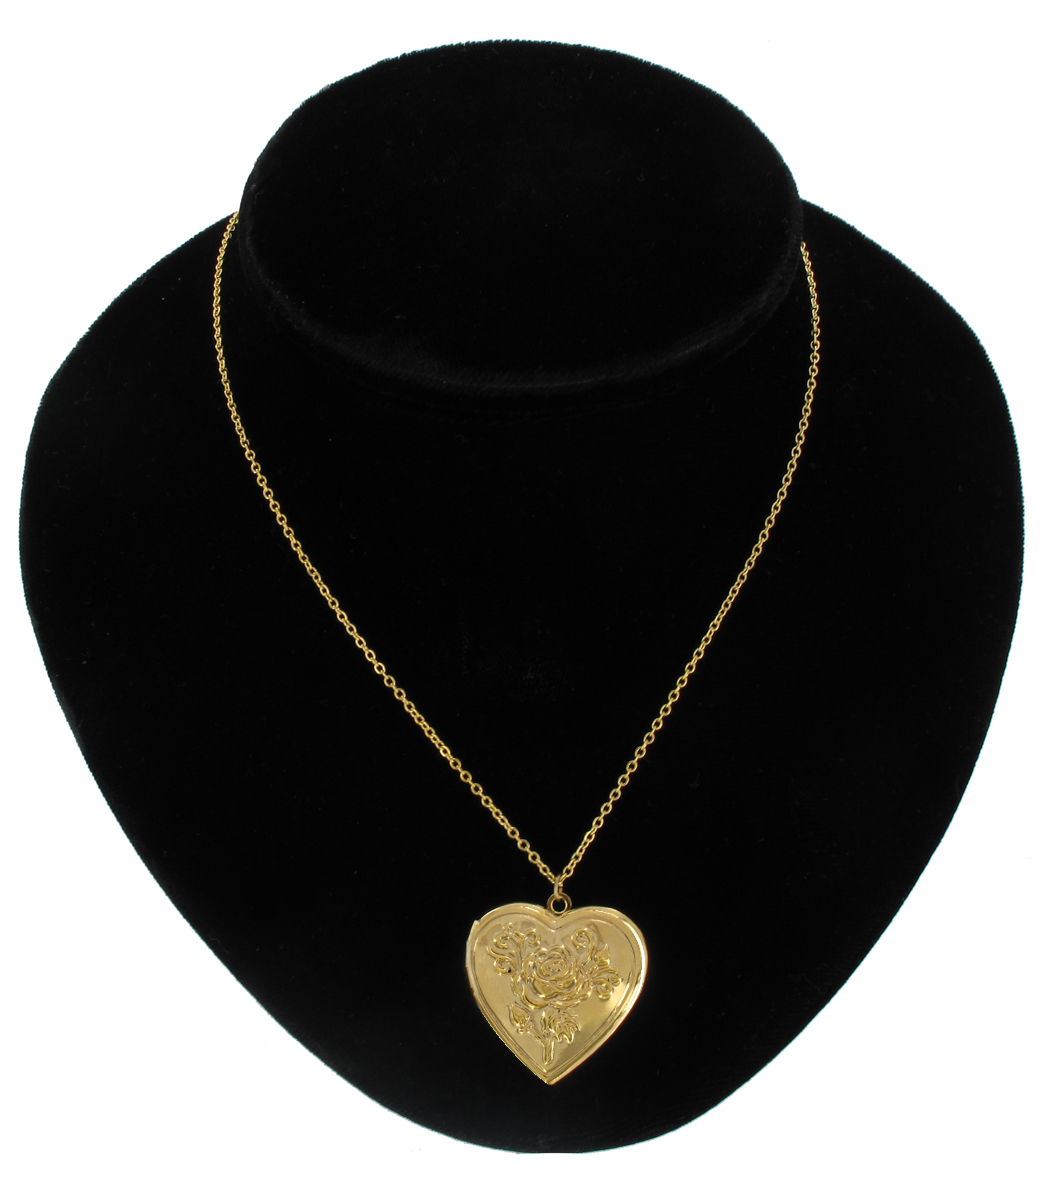 hurleyburley locket necklace personalised pendant heart shop gold original